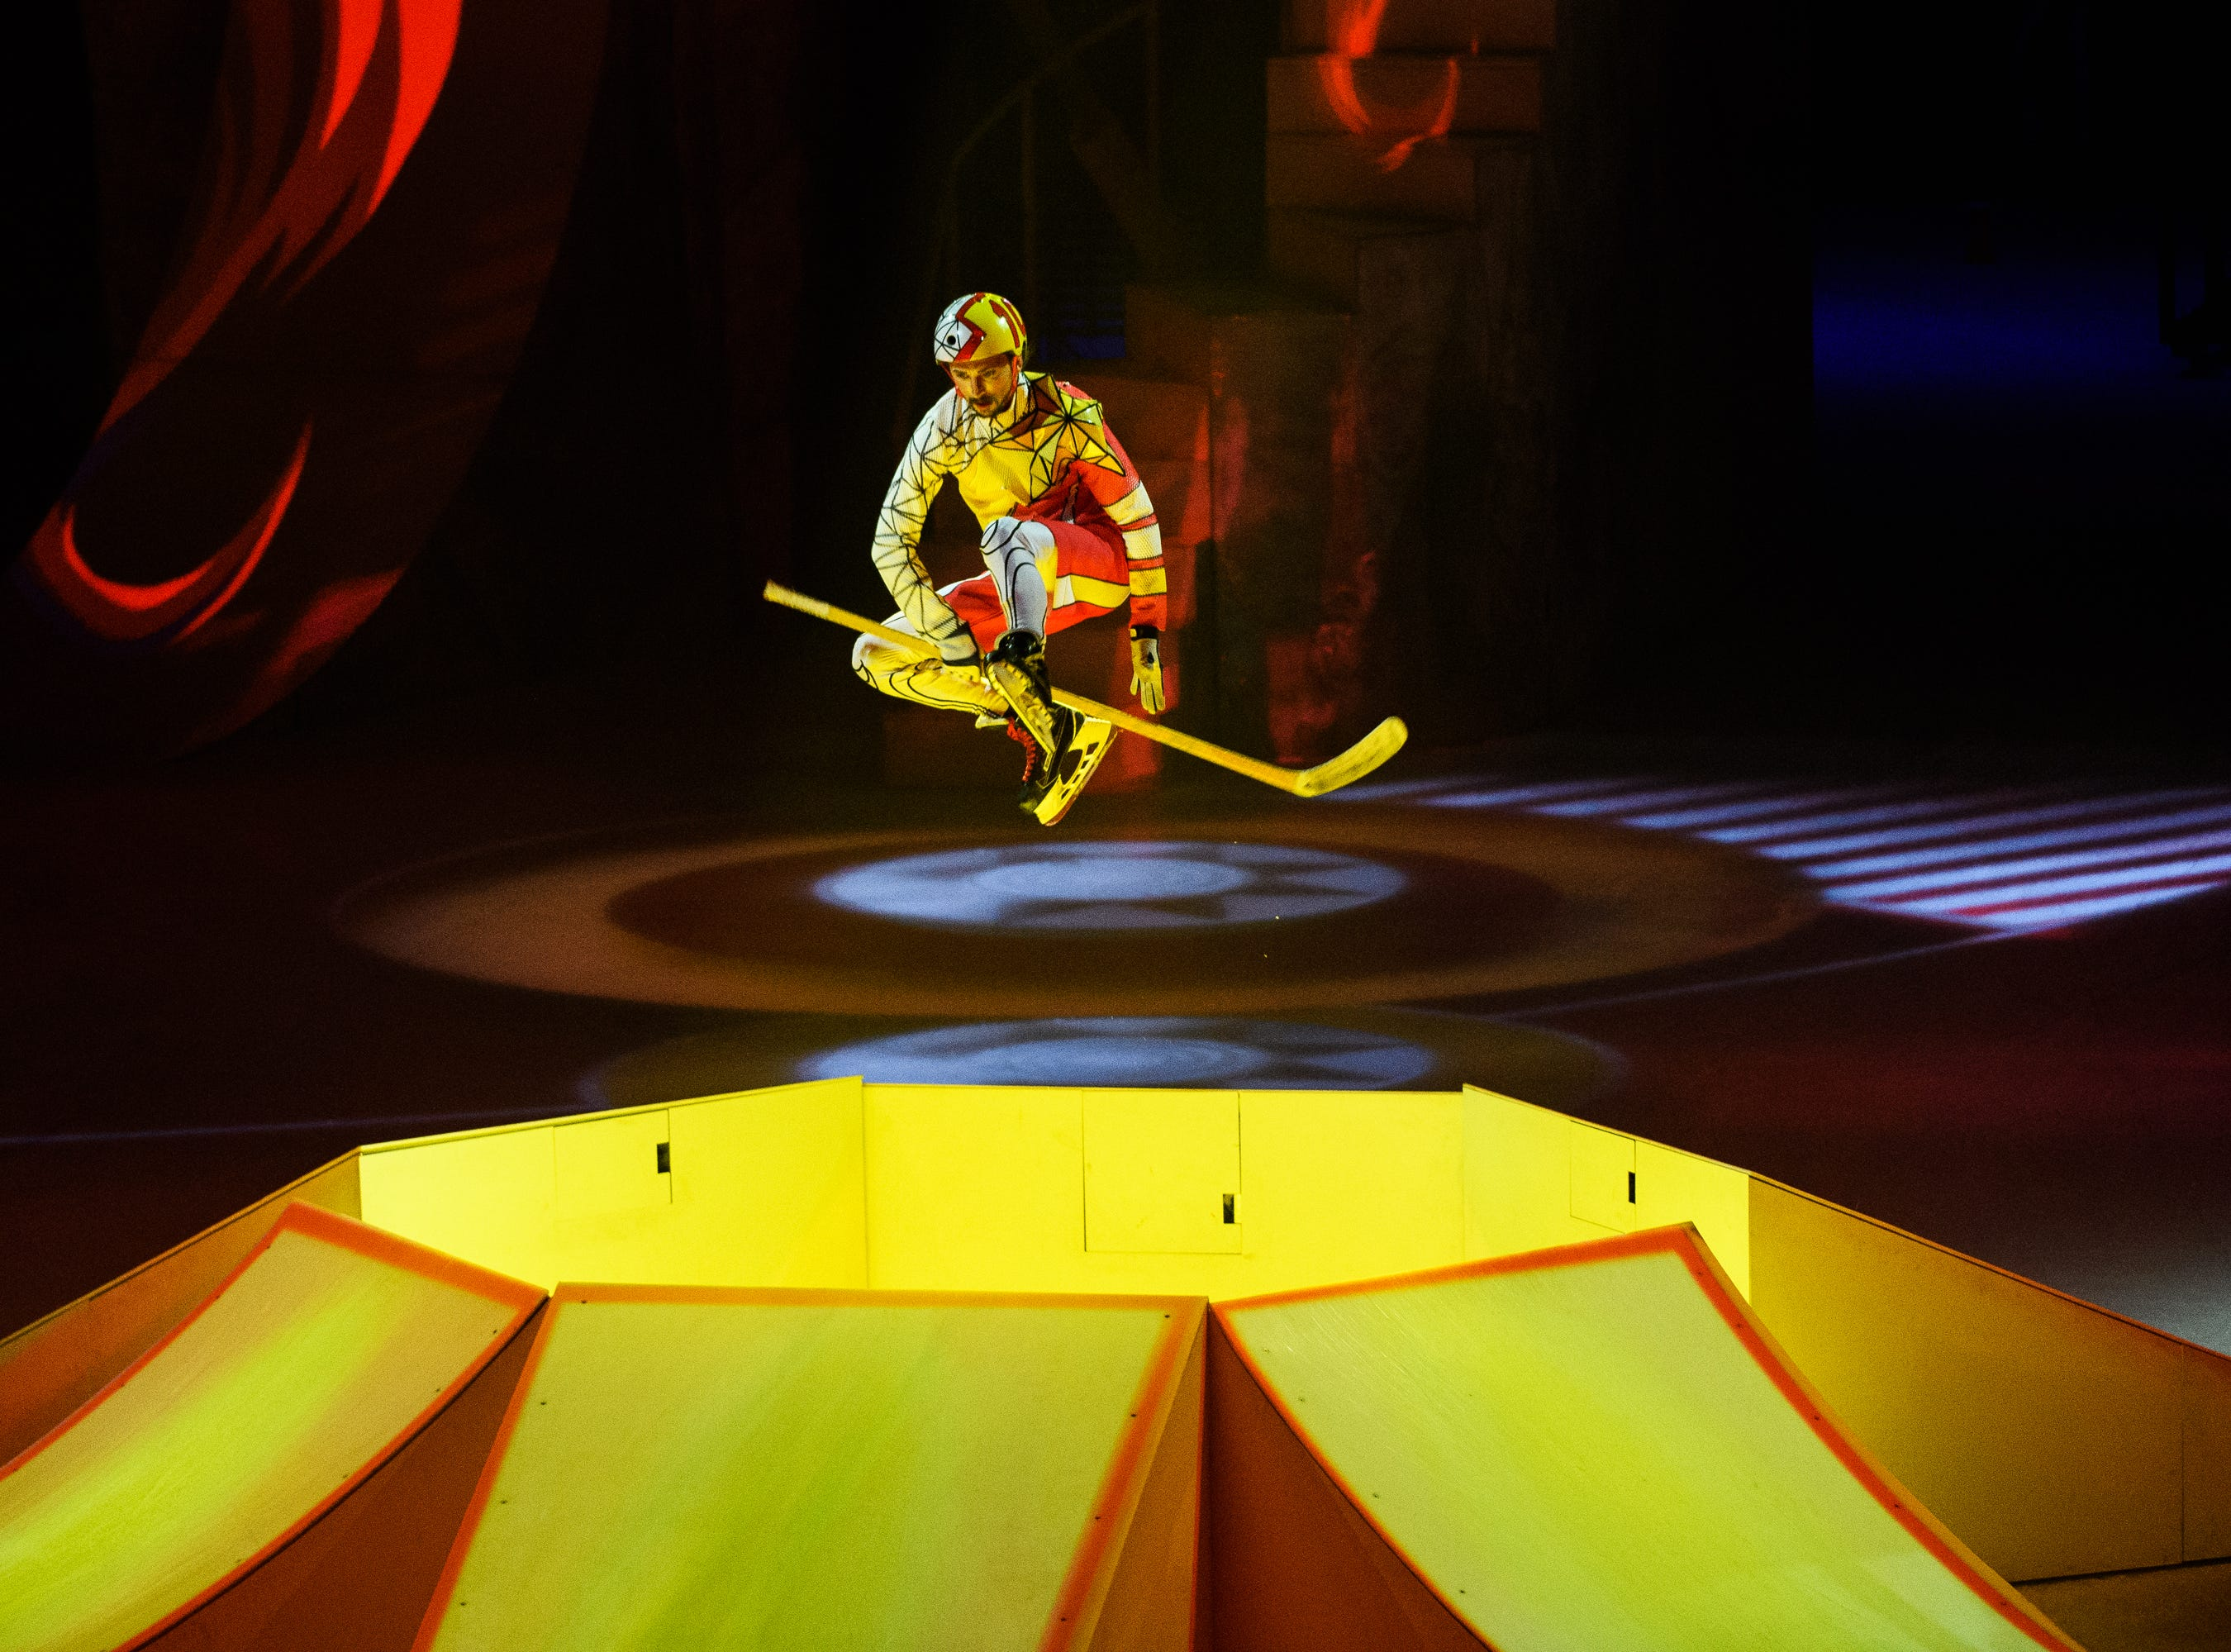 """Cirque du Soleil performer jumps off a ramp on ice skates during their show """"CRYSTAL,"""" at the Bon Secours Wellness Arena on Thursday, Aug. 9, 2018."""